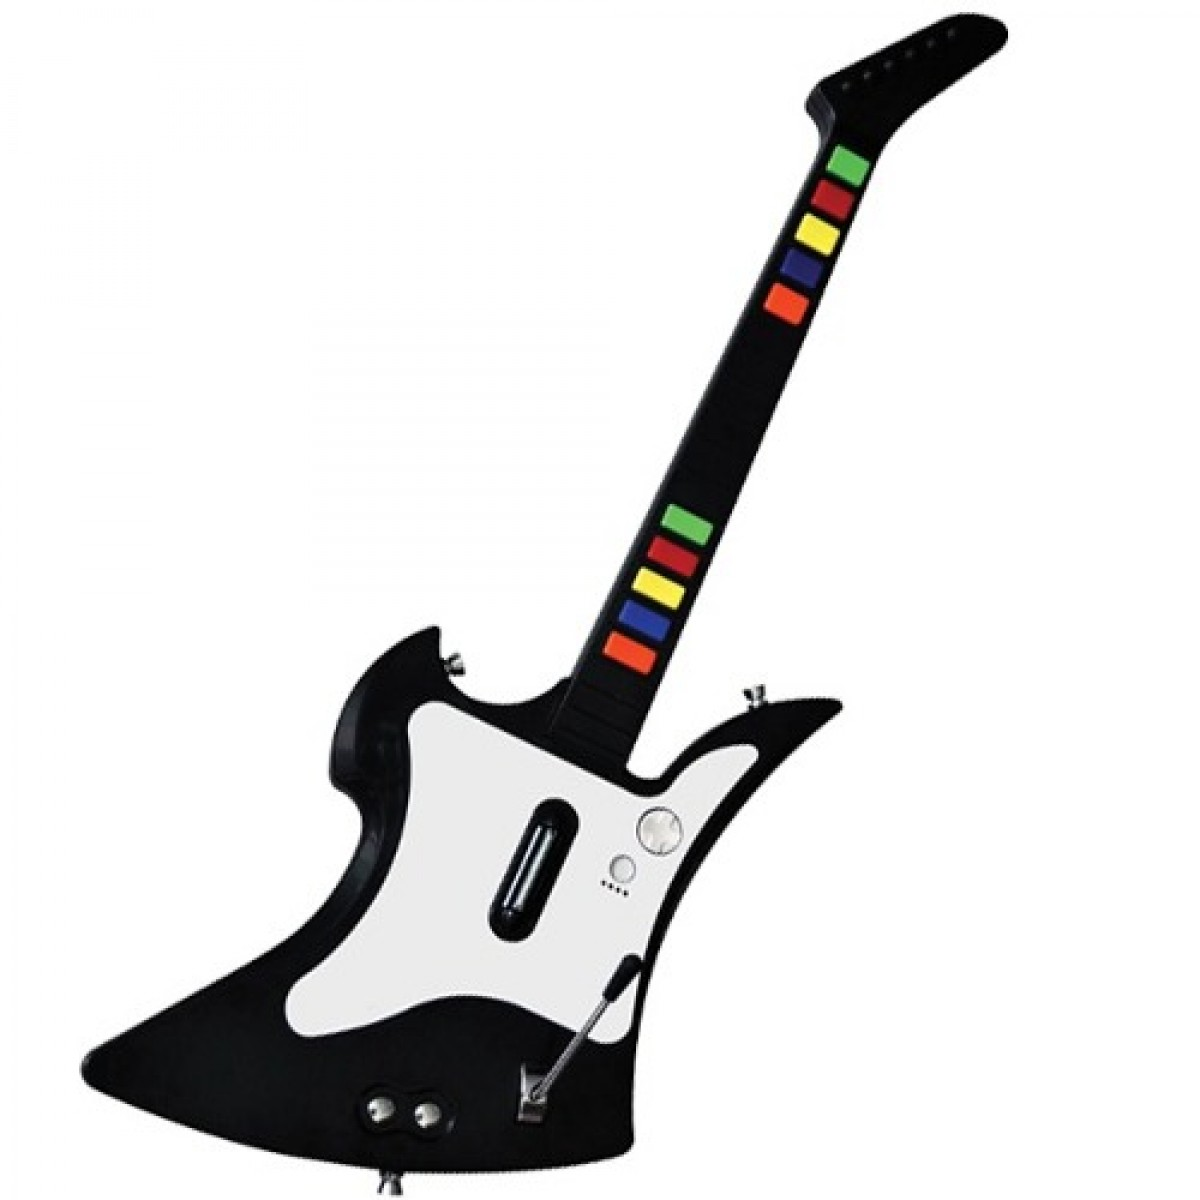 guitarra rockband ps3